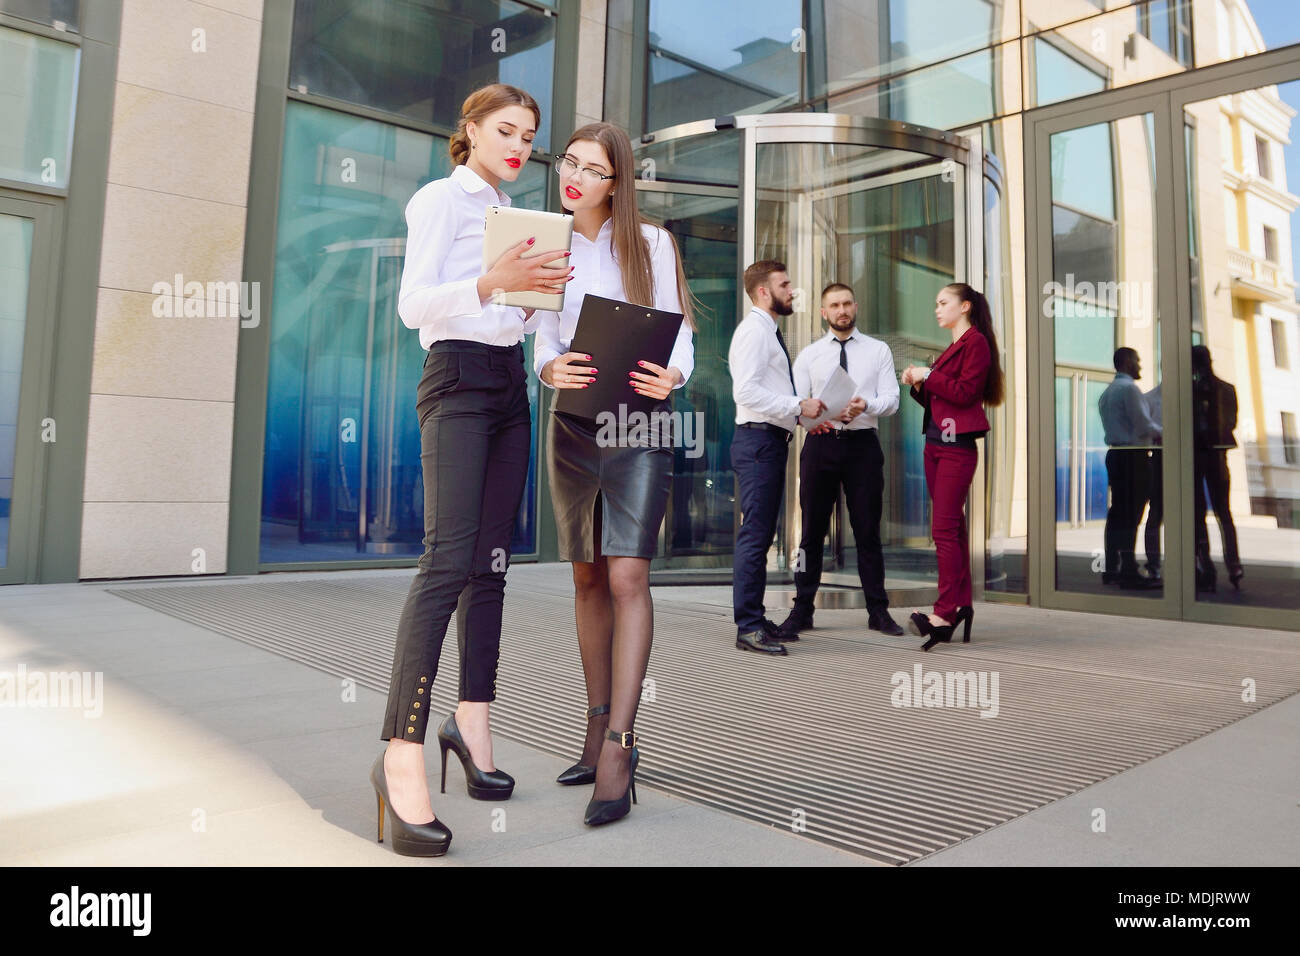 Business lady. Office staff. Two young girls with electronic tablets communicate against the background of a multi-storey glass office building and a  - Stock Image